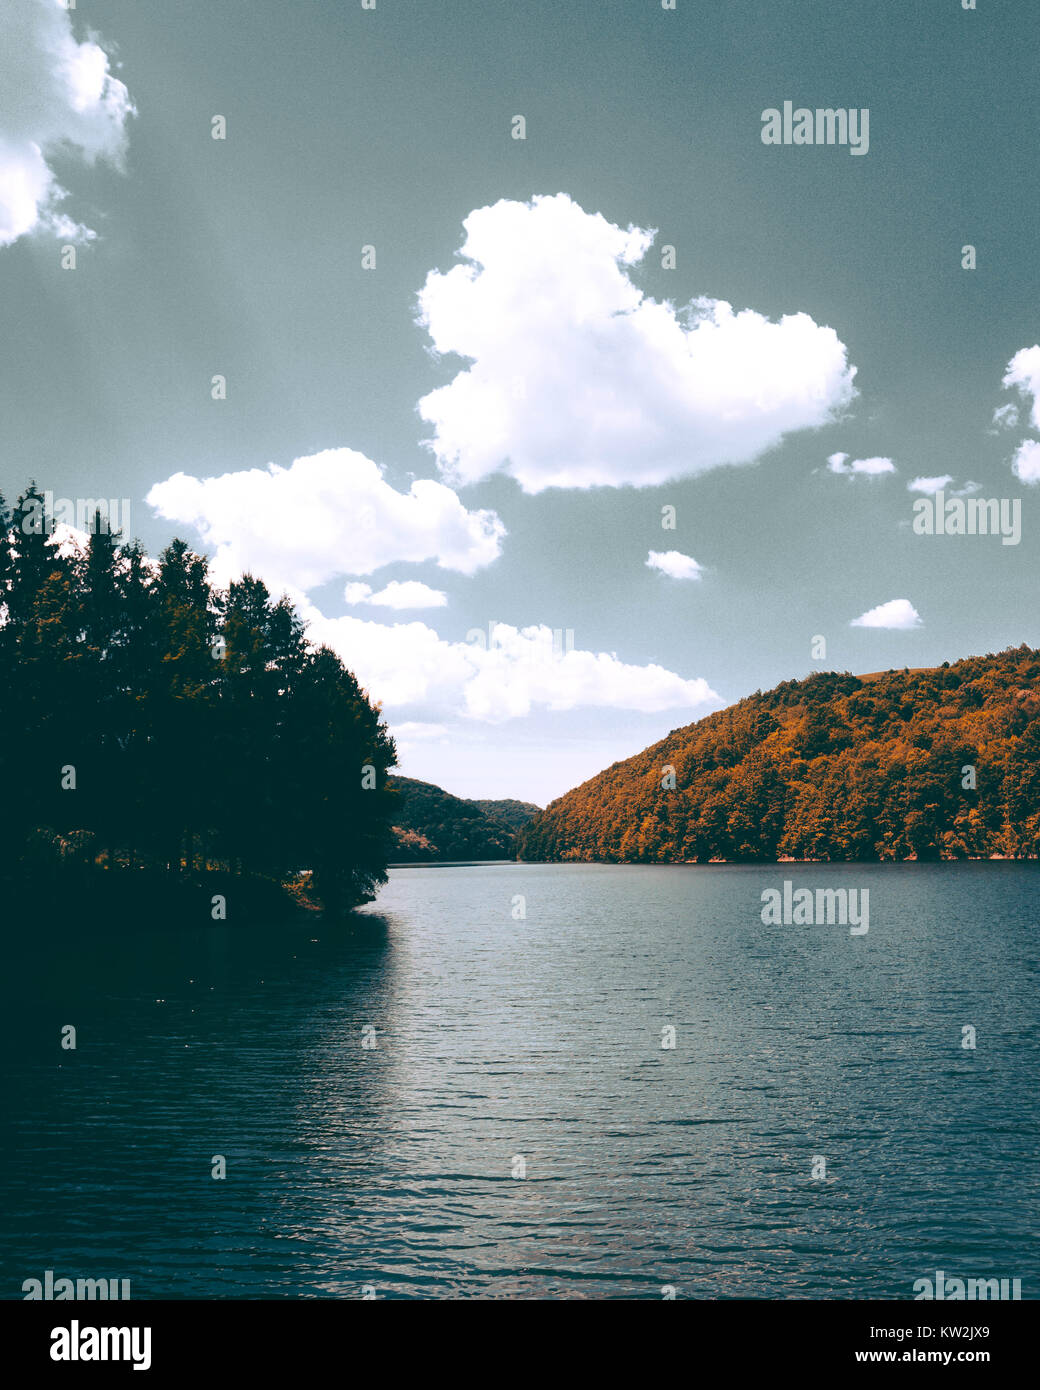 lake wiew that i took on my travel to Secu lake in Romania - Stock Image